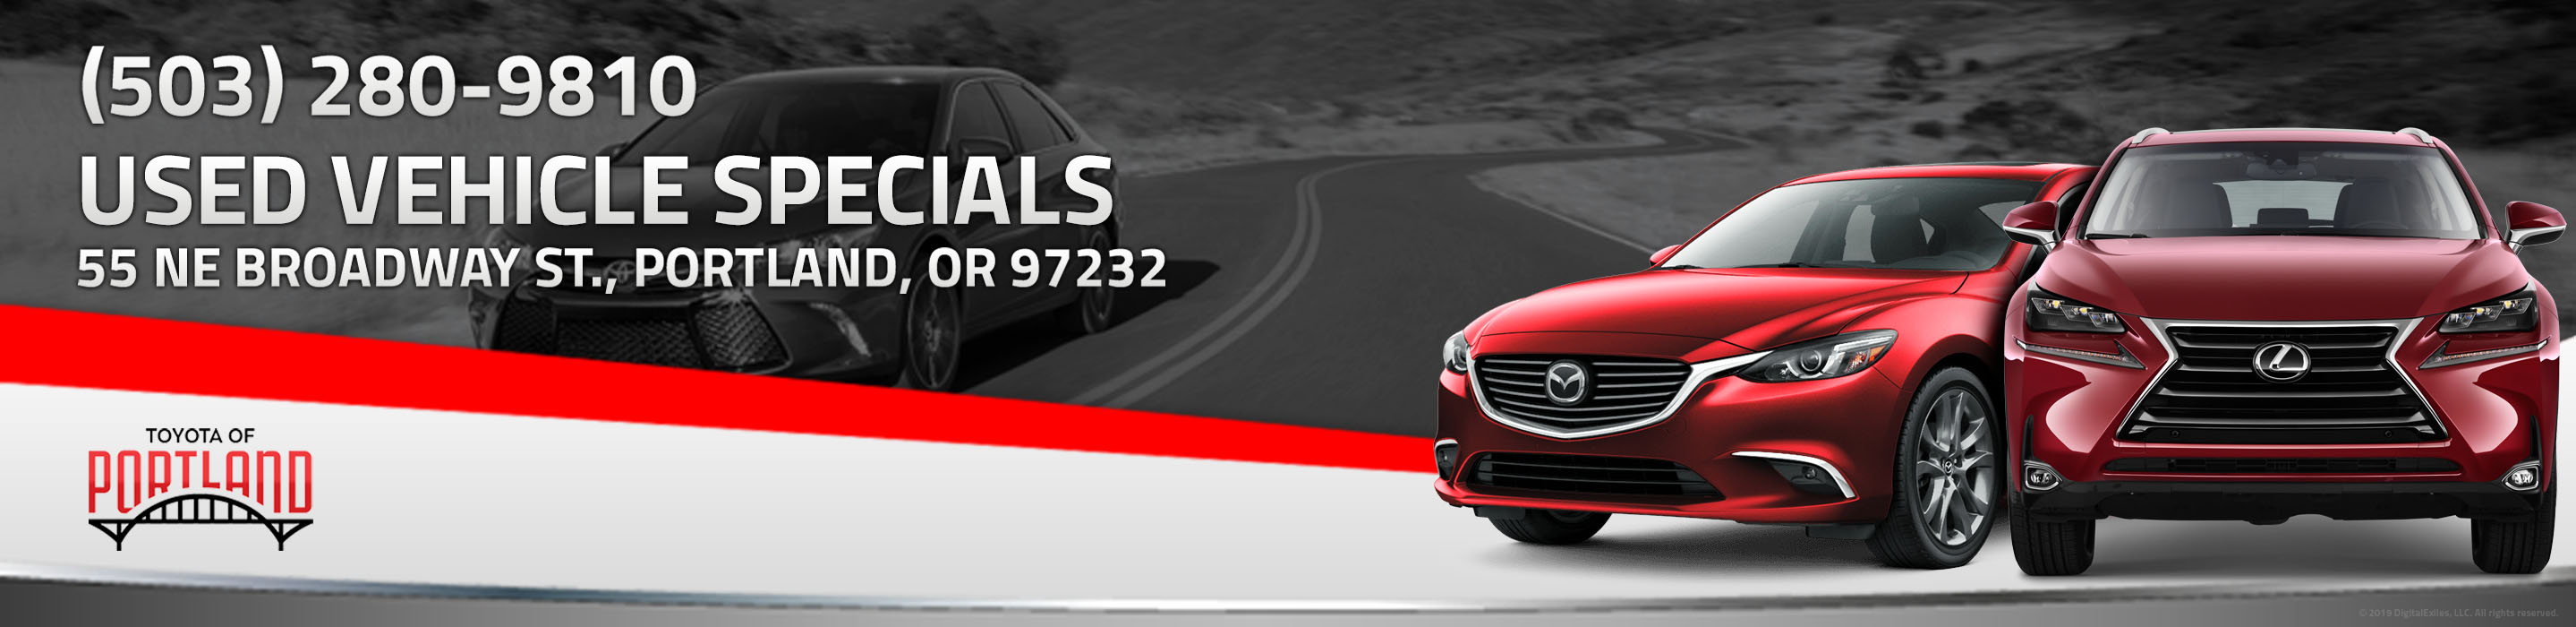 Our Lowest Payment Used Cars, Trucks & SUVs For Sale in Portland, OR